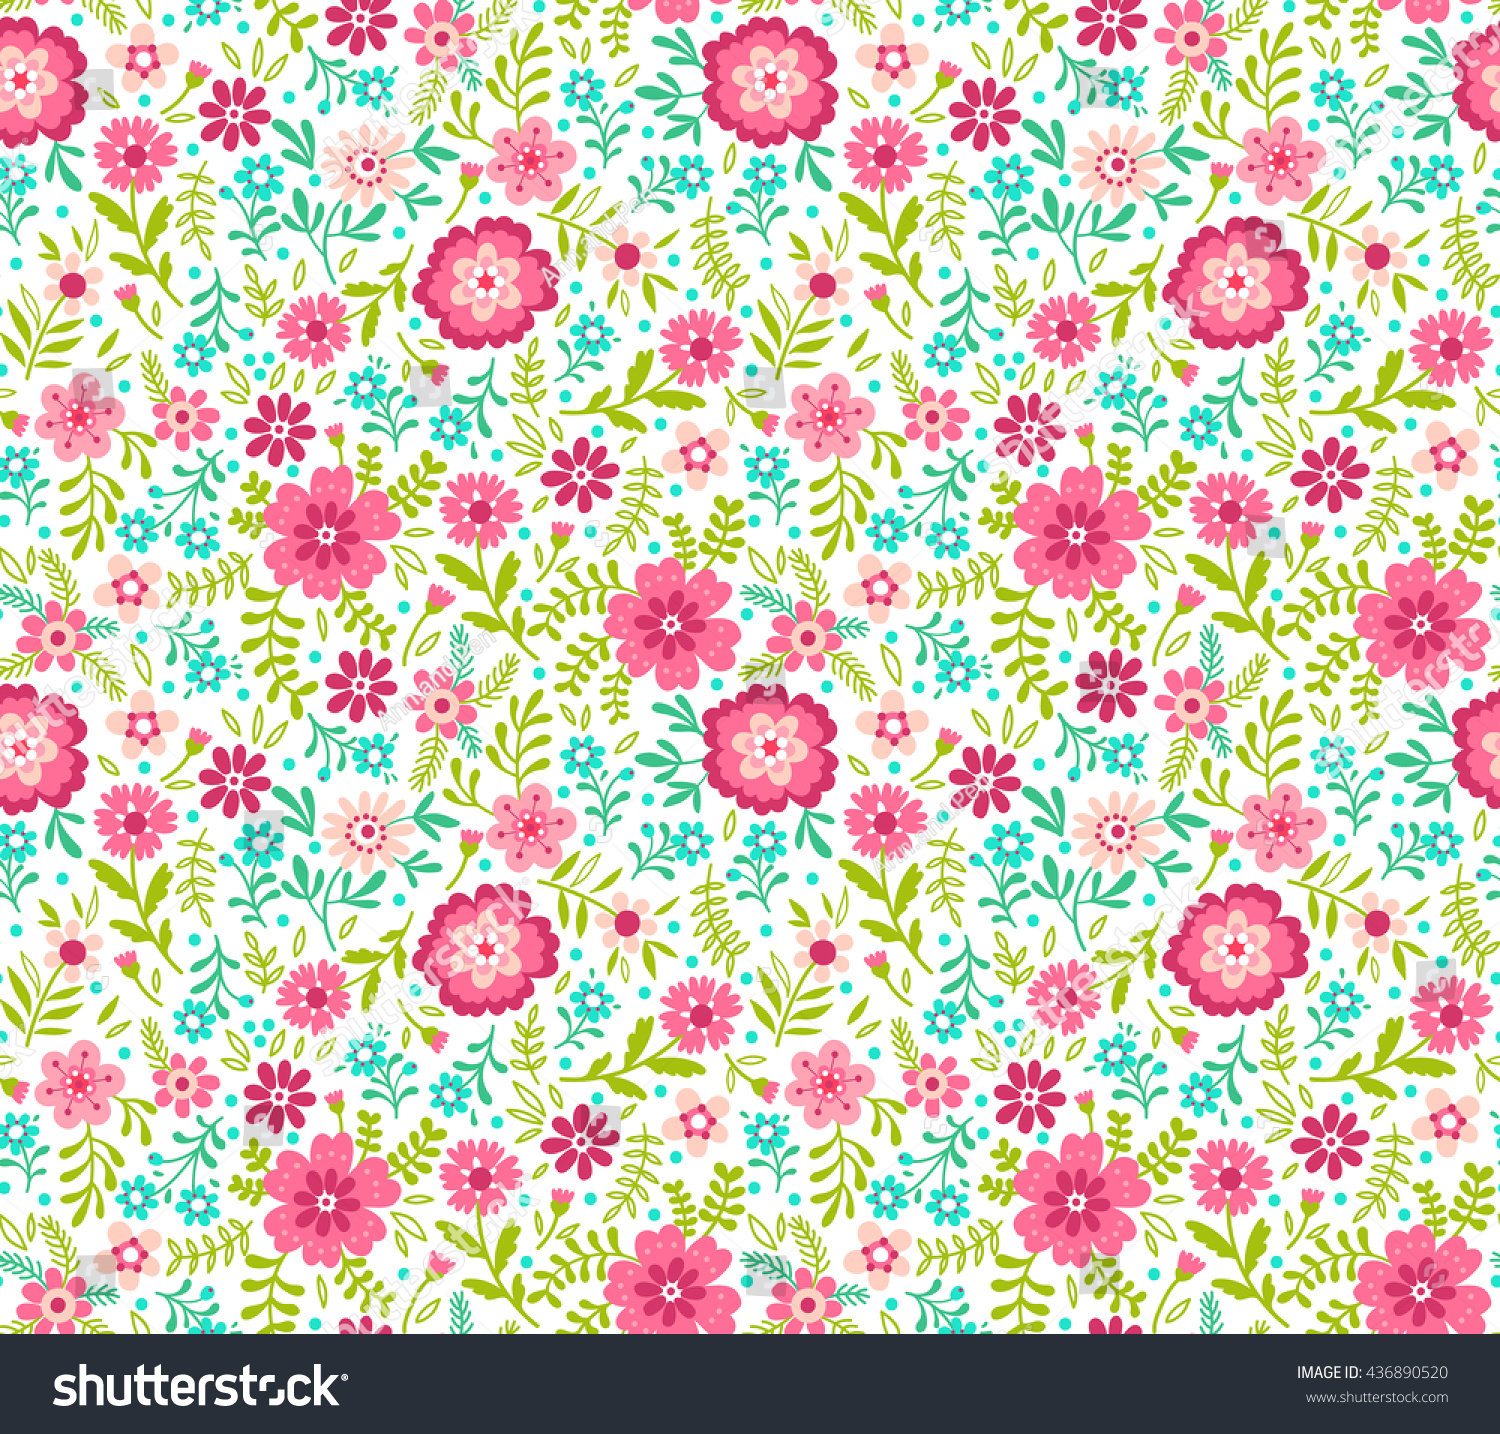 Cute pattern in small flower small pink and blue flowers white id 436890520 izmirmasajfo